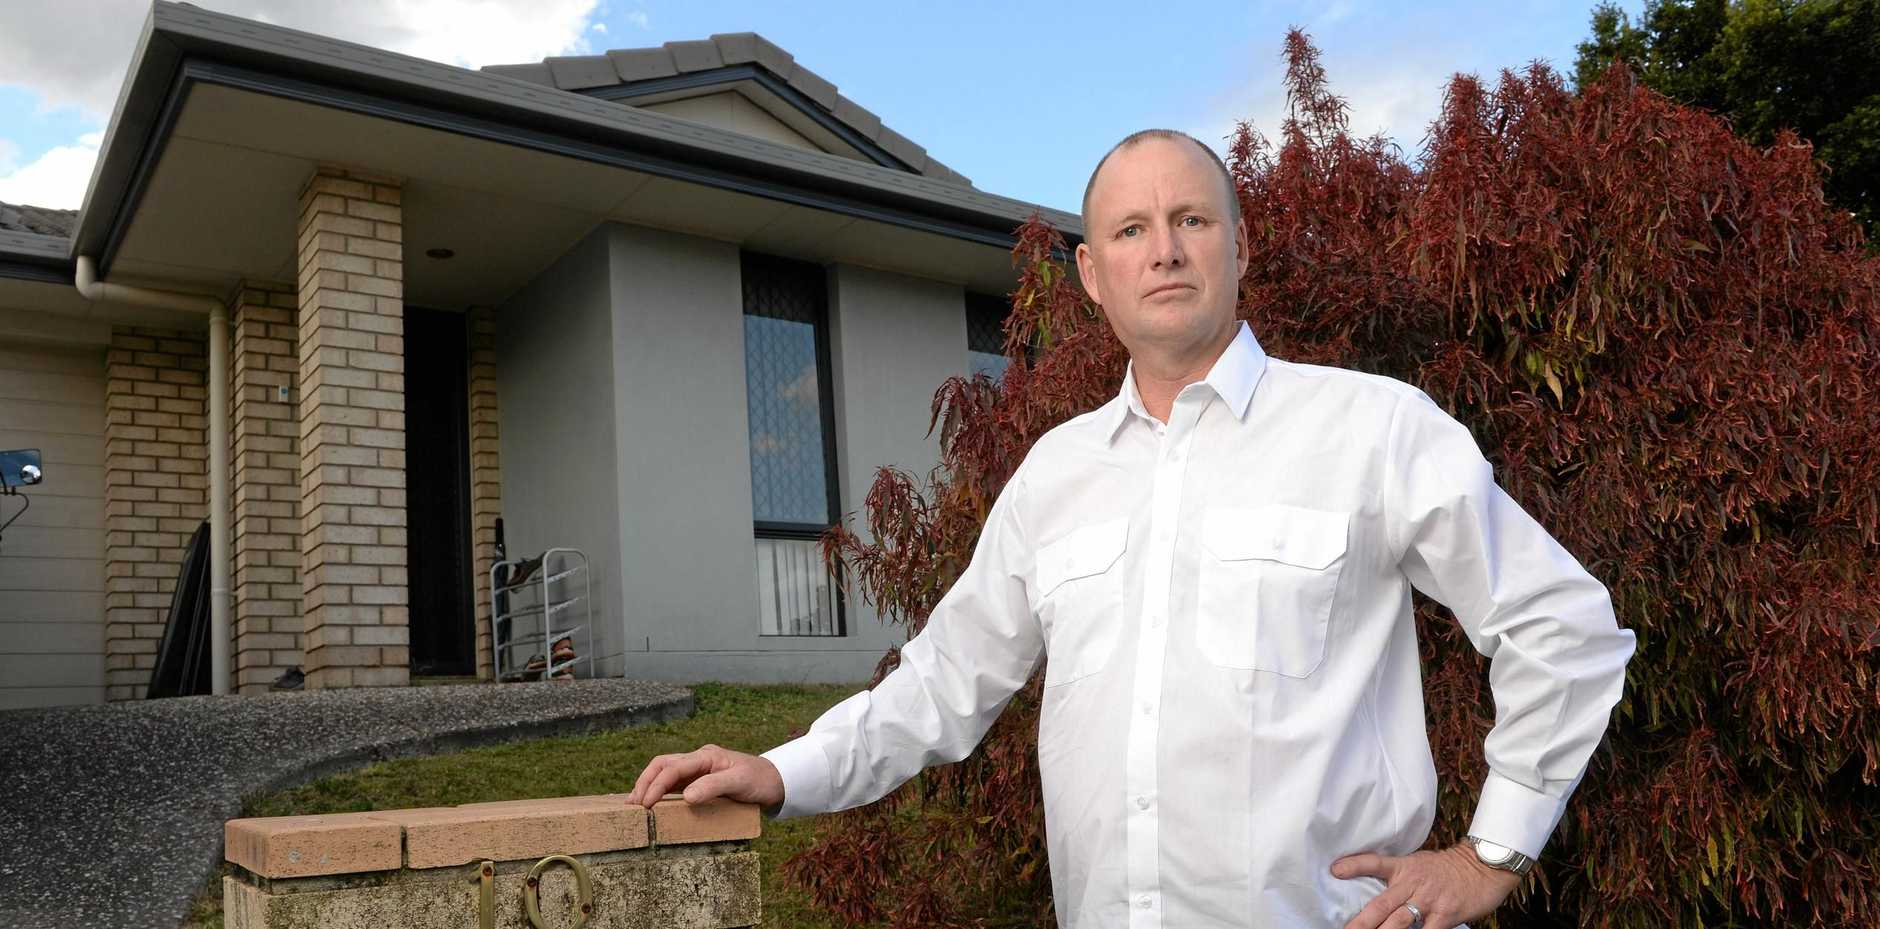 SALE: Glenn Christofferson wants the Ipswich City Council to buy back his home at Goodna that was rezoned after floods in 2011.